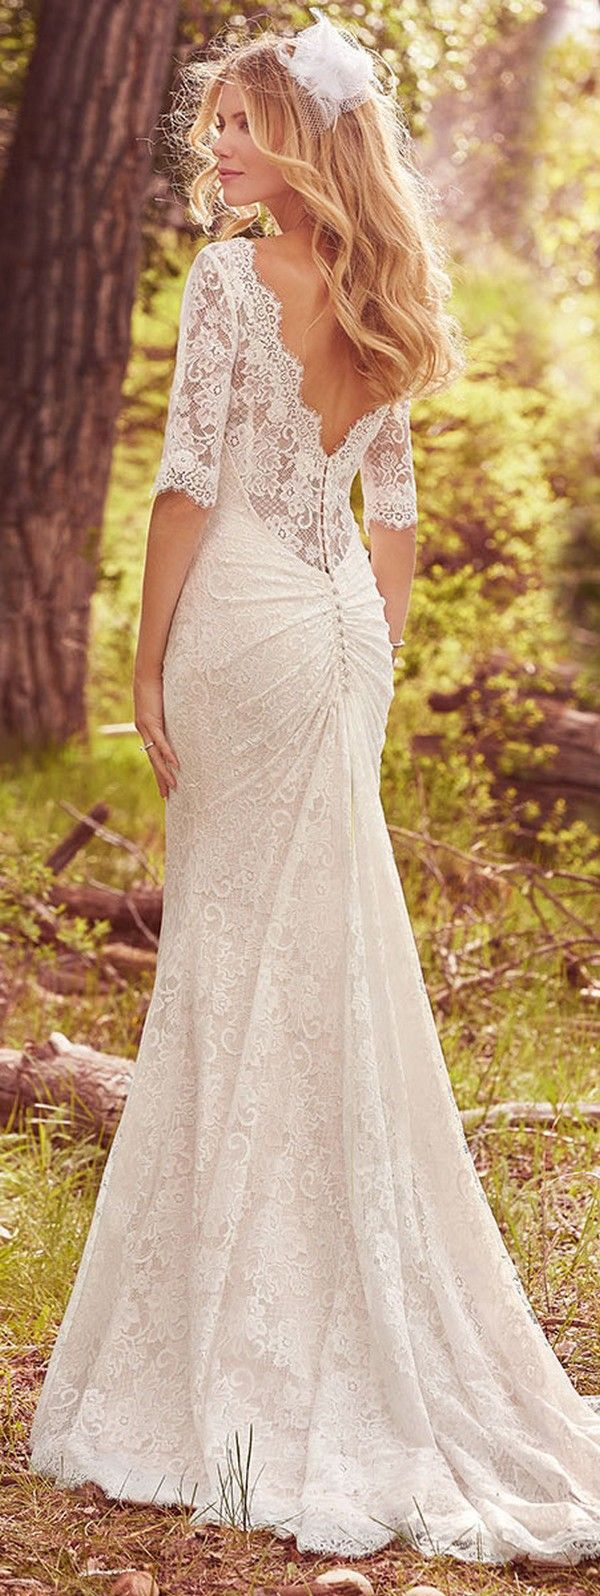 Best wedding dress for size 20  Top  Vintage Wedding Dresses for  Trends  one day